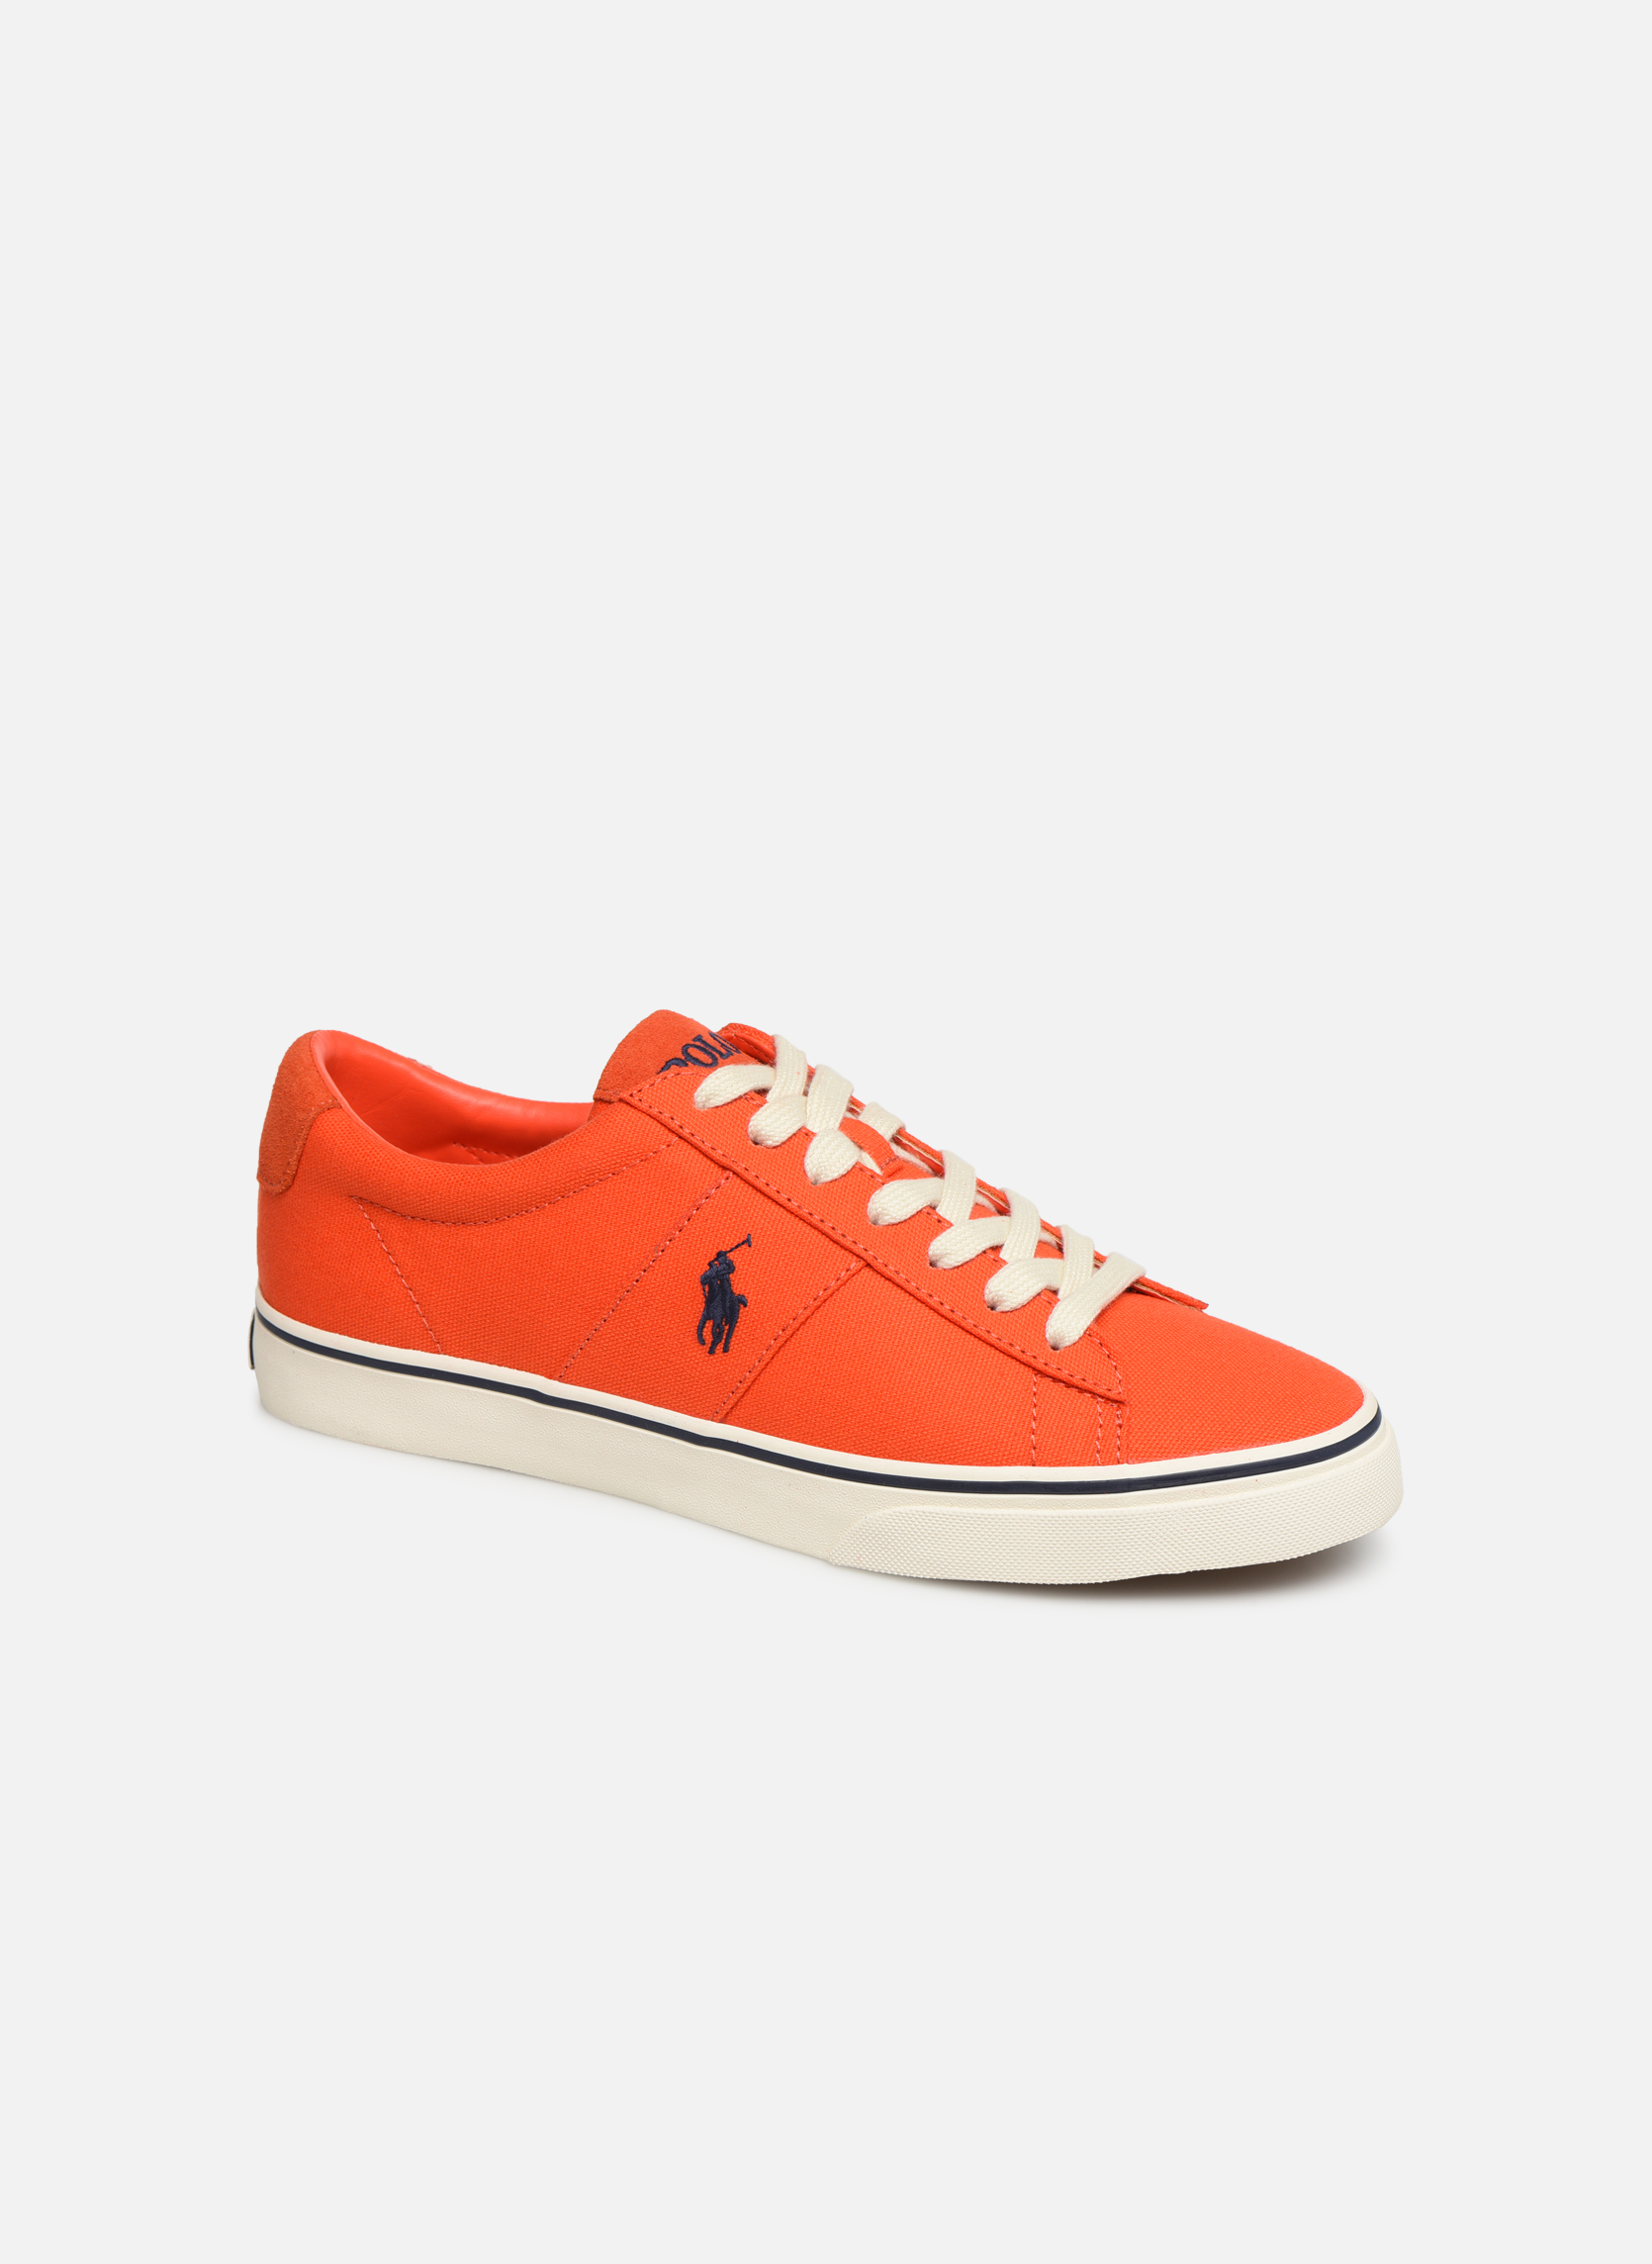 Sneakers Polo Ralph Lauren Oranje